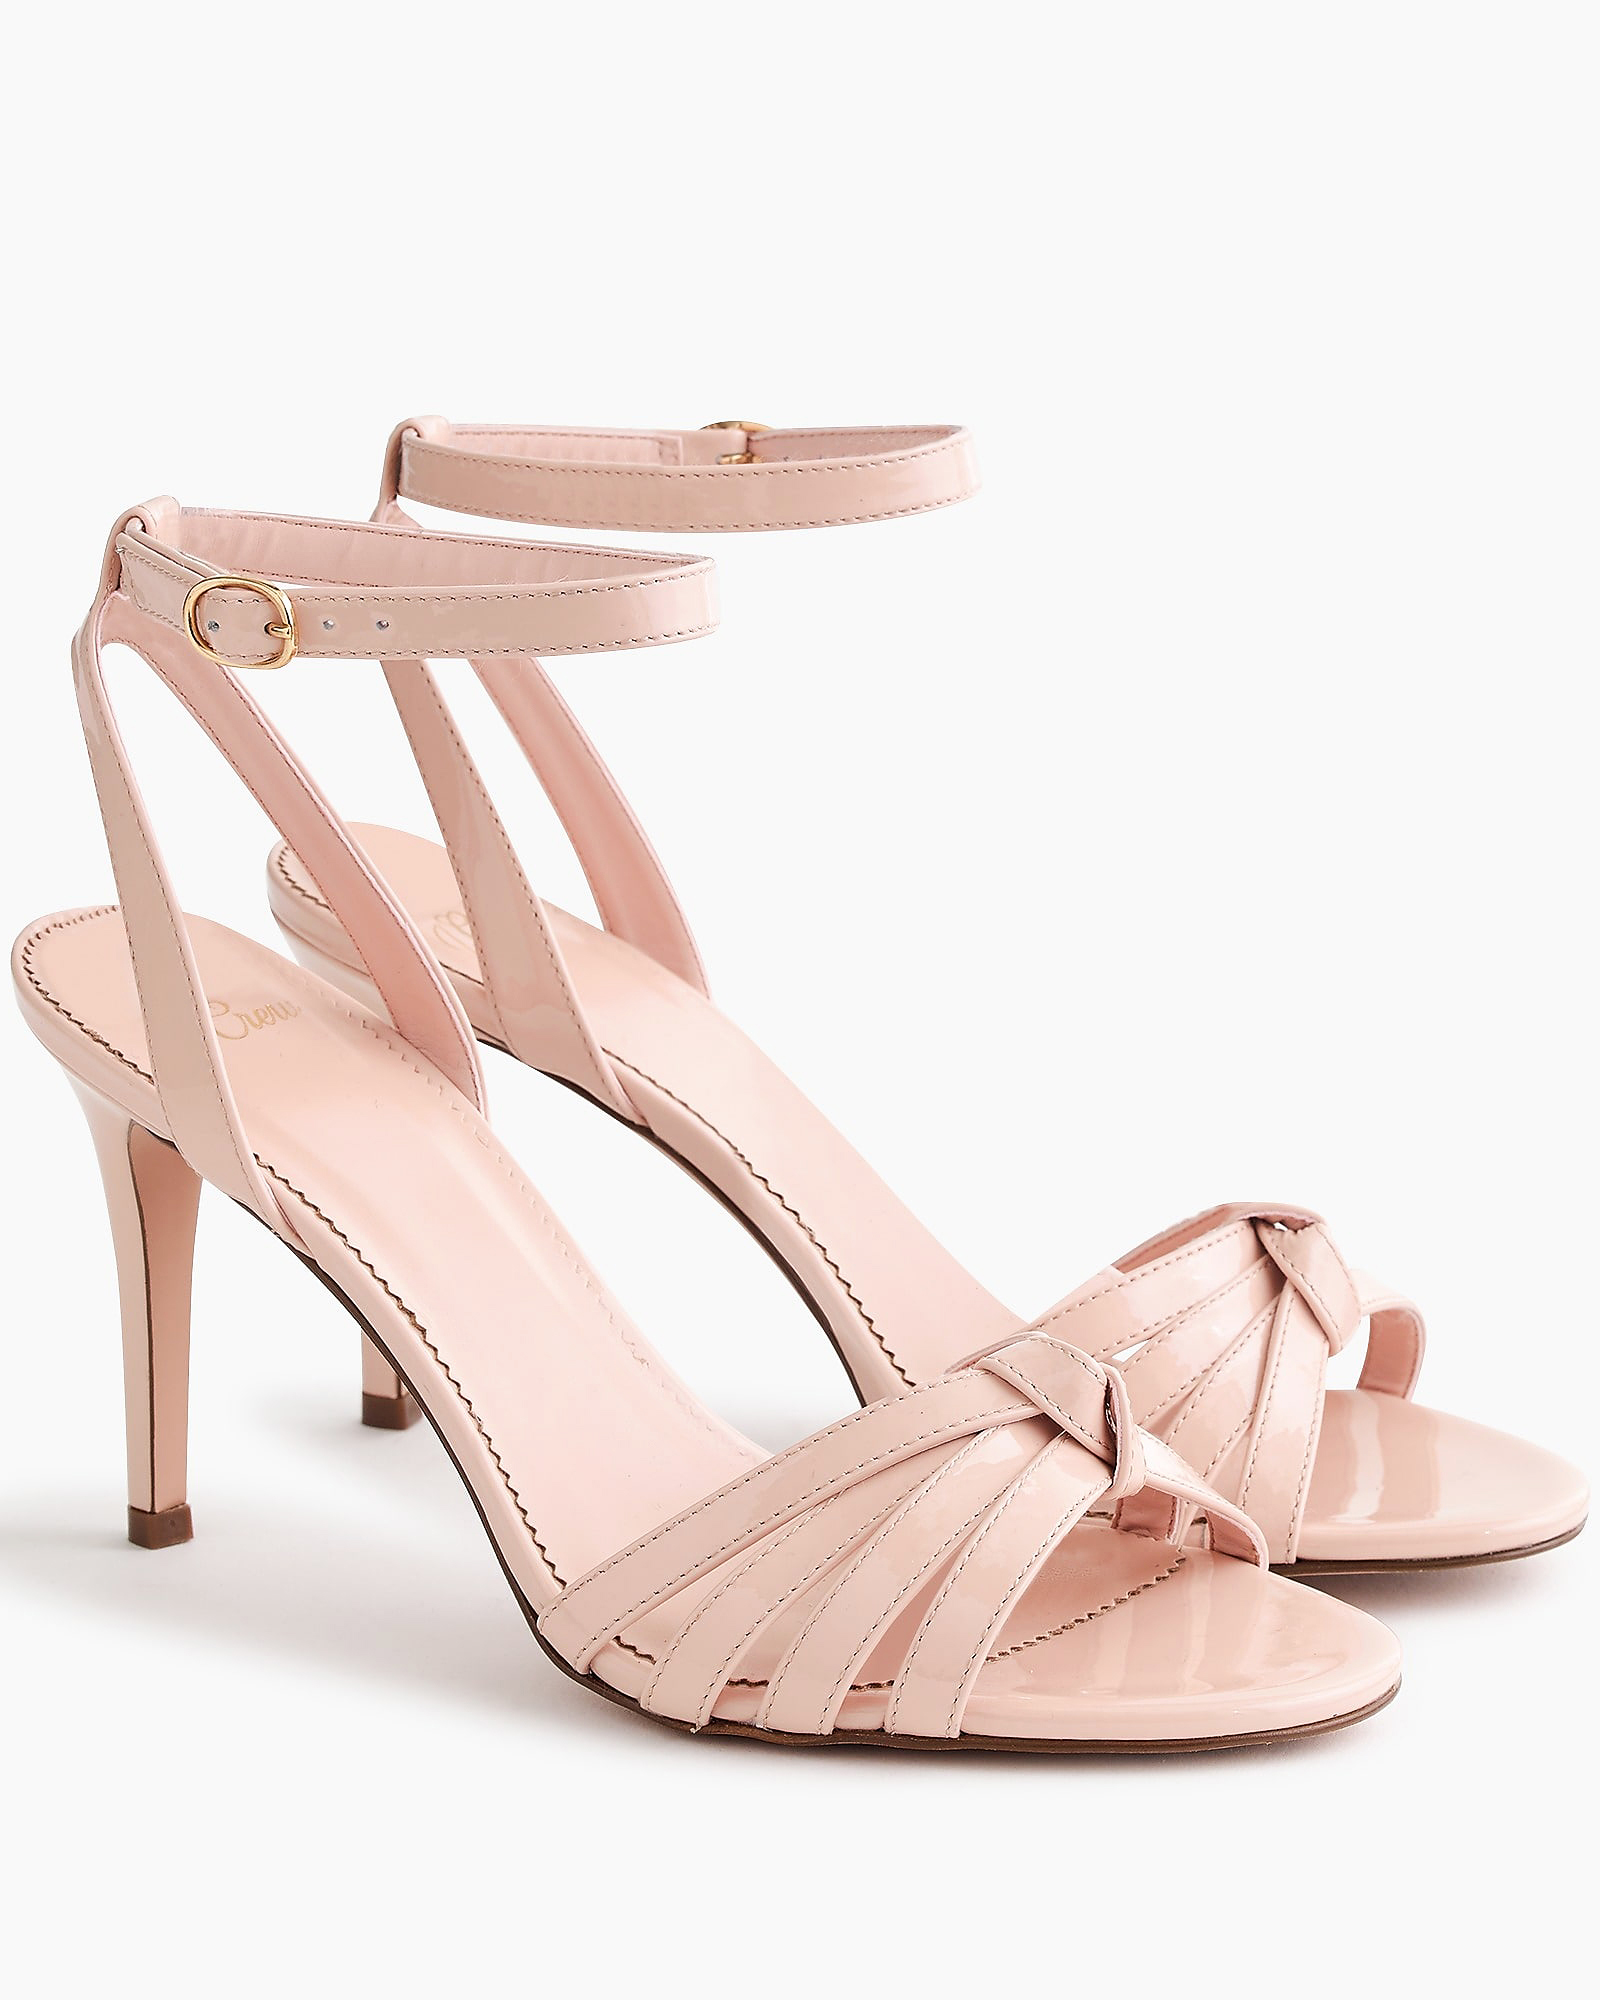 sun-washed pink patent leather sandals bridesmaid shoes